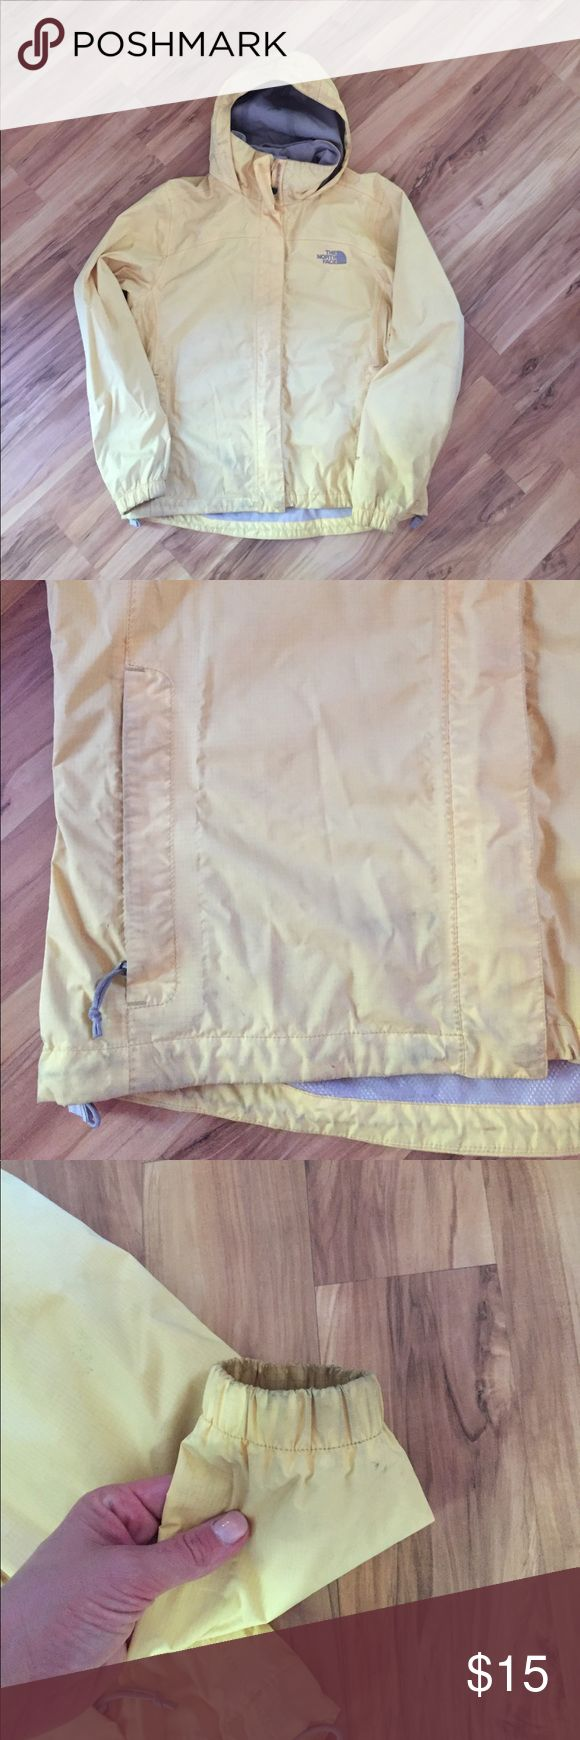 North face windbreaker Some wear on it as shown in the pictures. The North Face Jackets & Coats